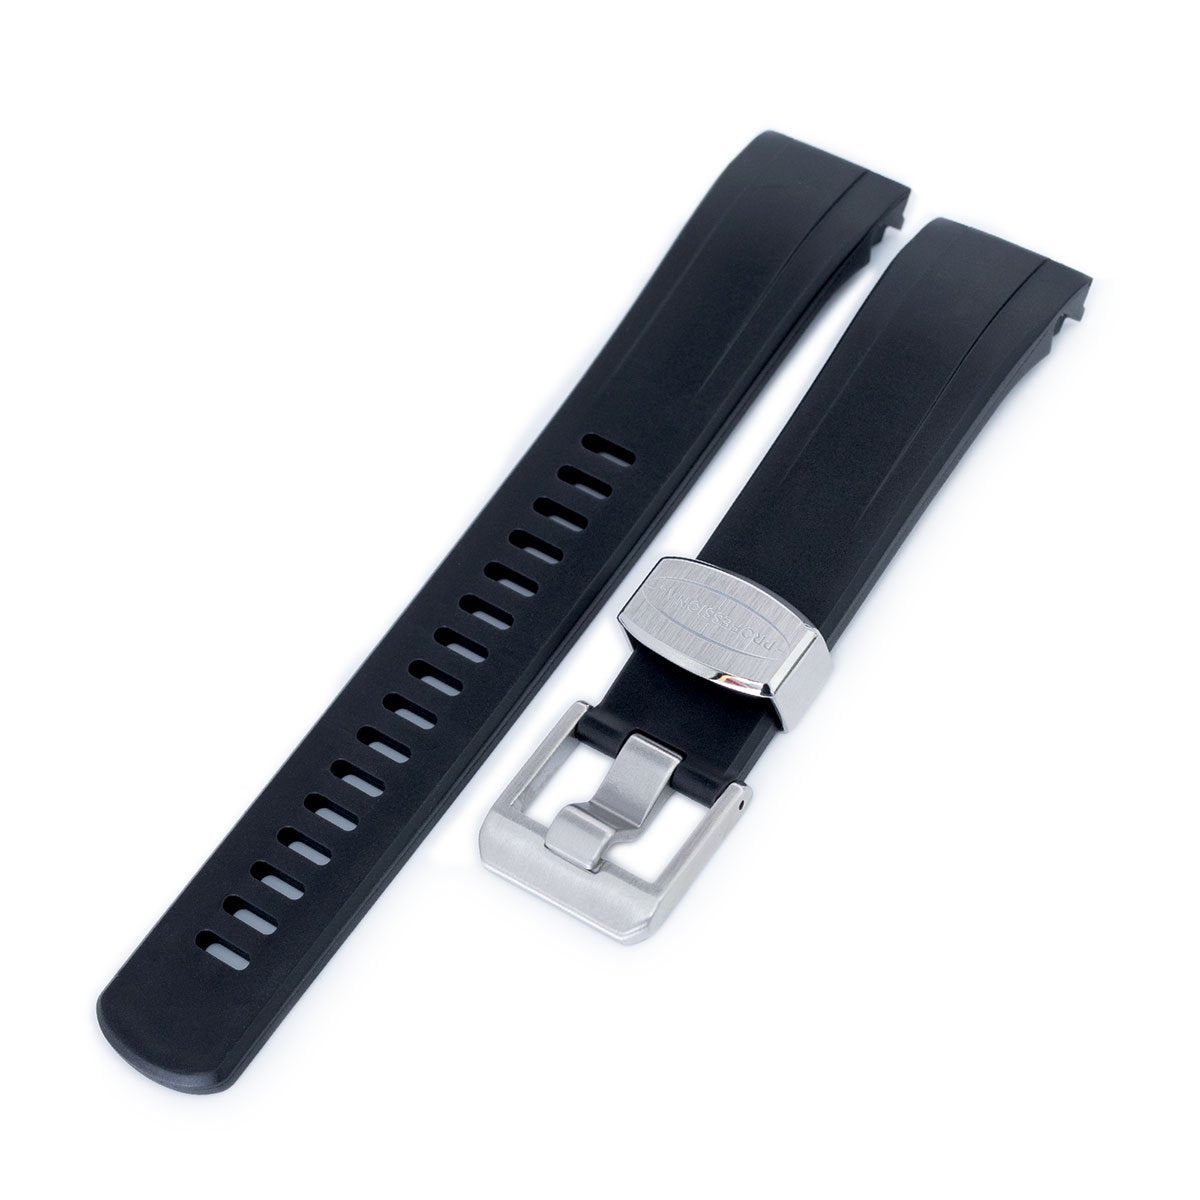 22mm Crafter Blue Black Rubber Curved Lug Watch Strap for Seiko Samurai SRPB51 Strapcode Watch Bands